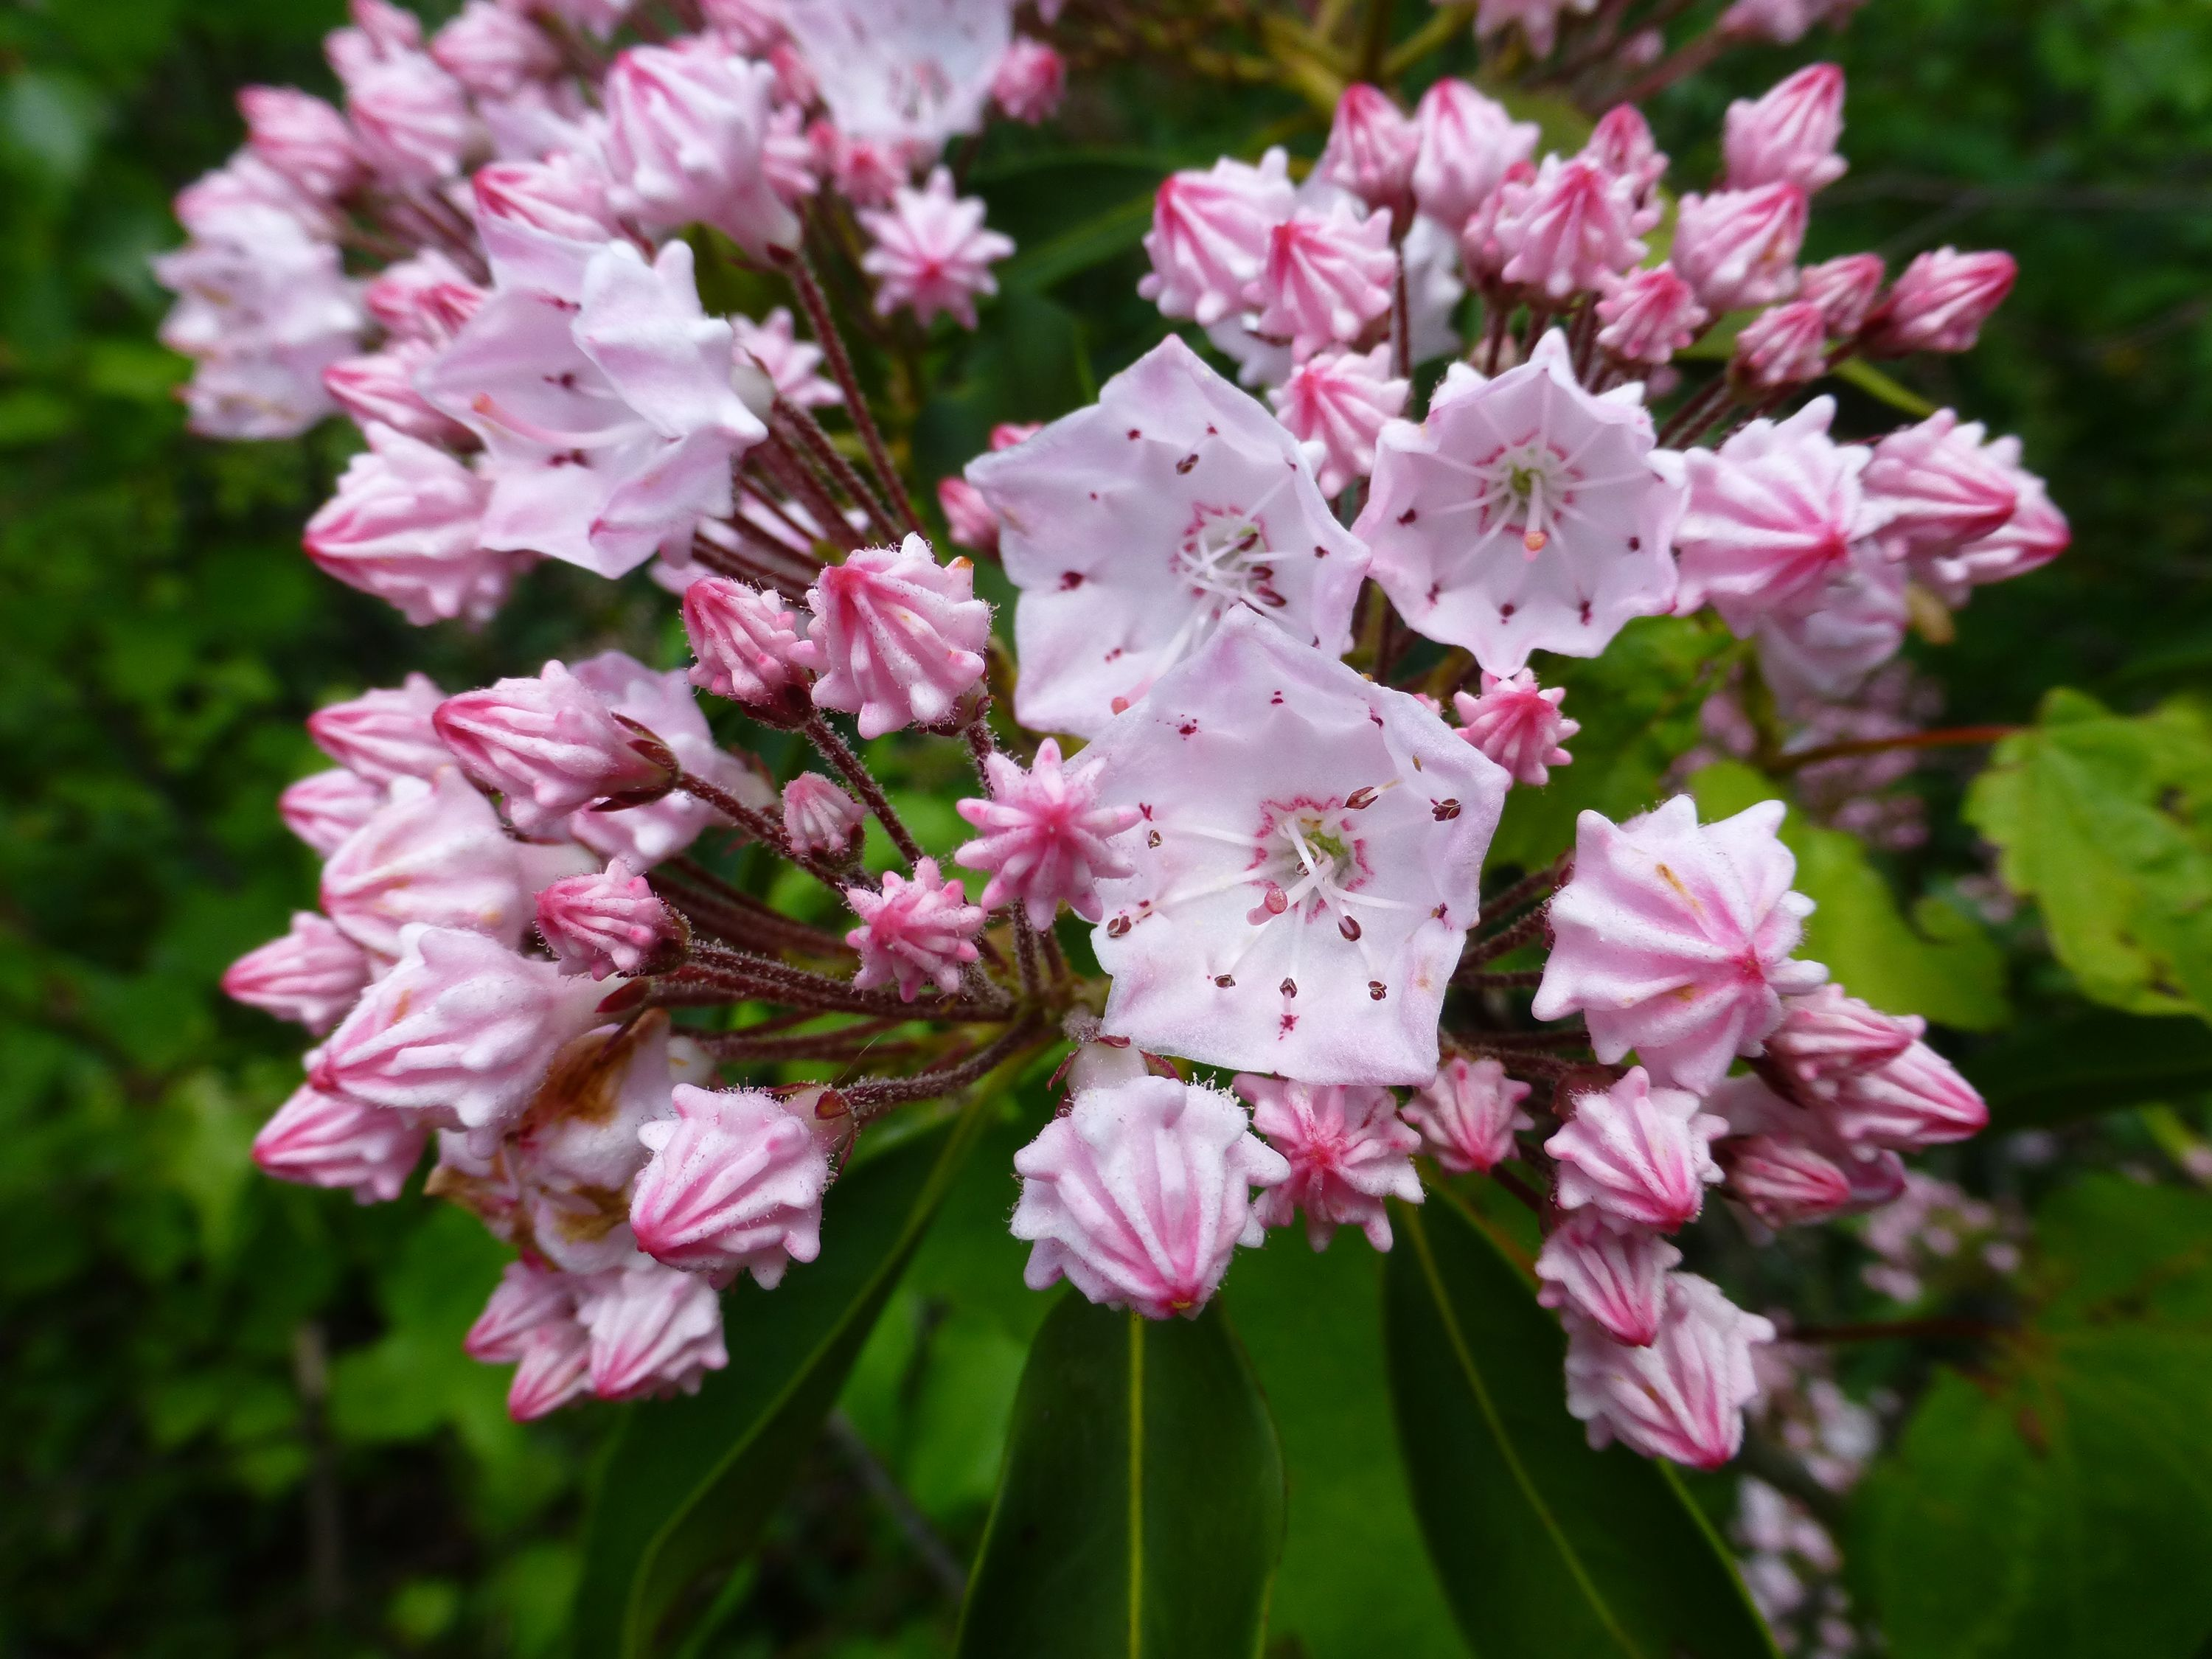 White cup shaped flowers with pink edges bloom on a green leafed bush.